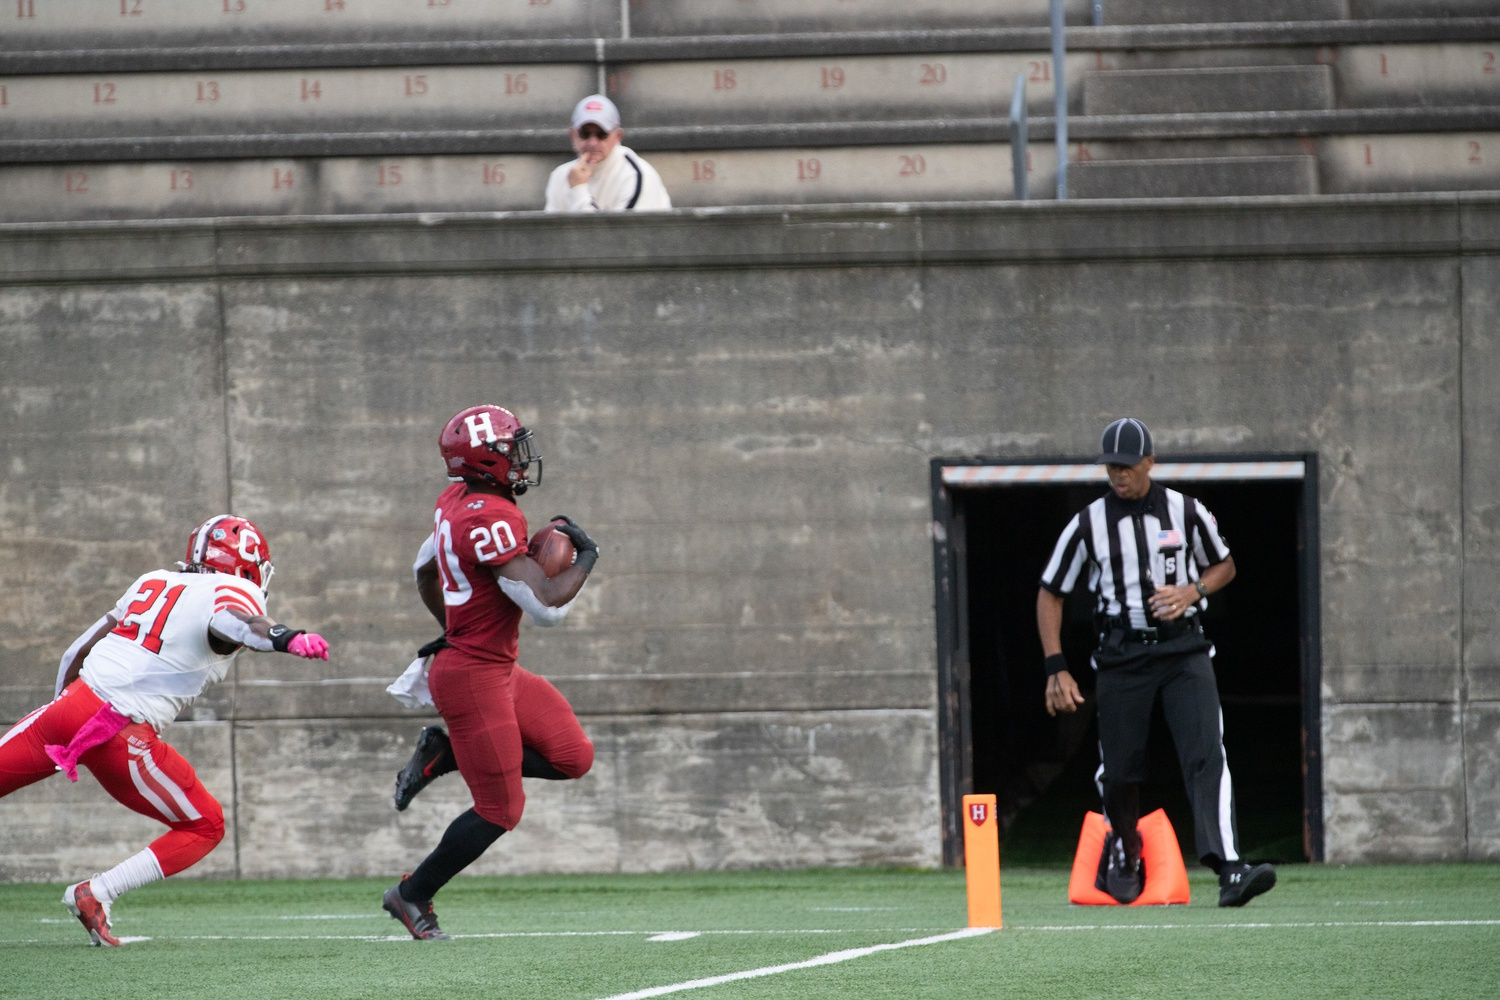 Junior running back Aaron Shampklin races past a Cornell defender for the touchdown in last Saturday's 24-10 victory. Shampklin finished the contest with two scores and 92 yards on 18 carries, adding to his impressive season as the Crimson's workhorse from the backfield.